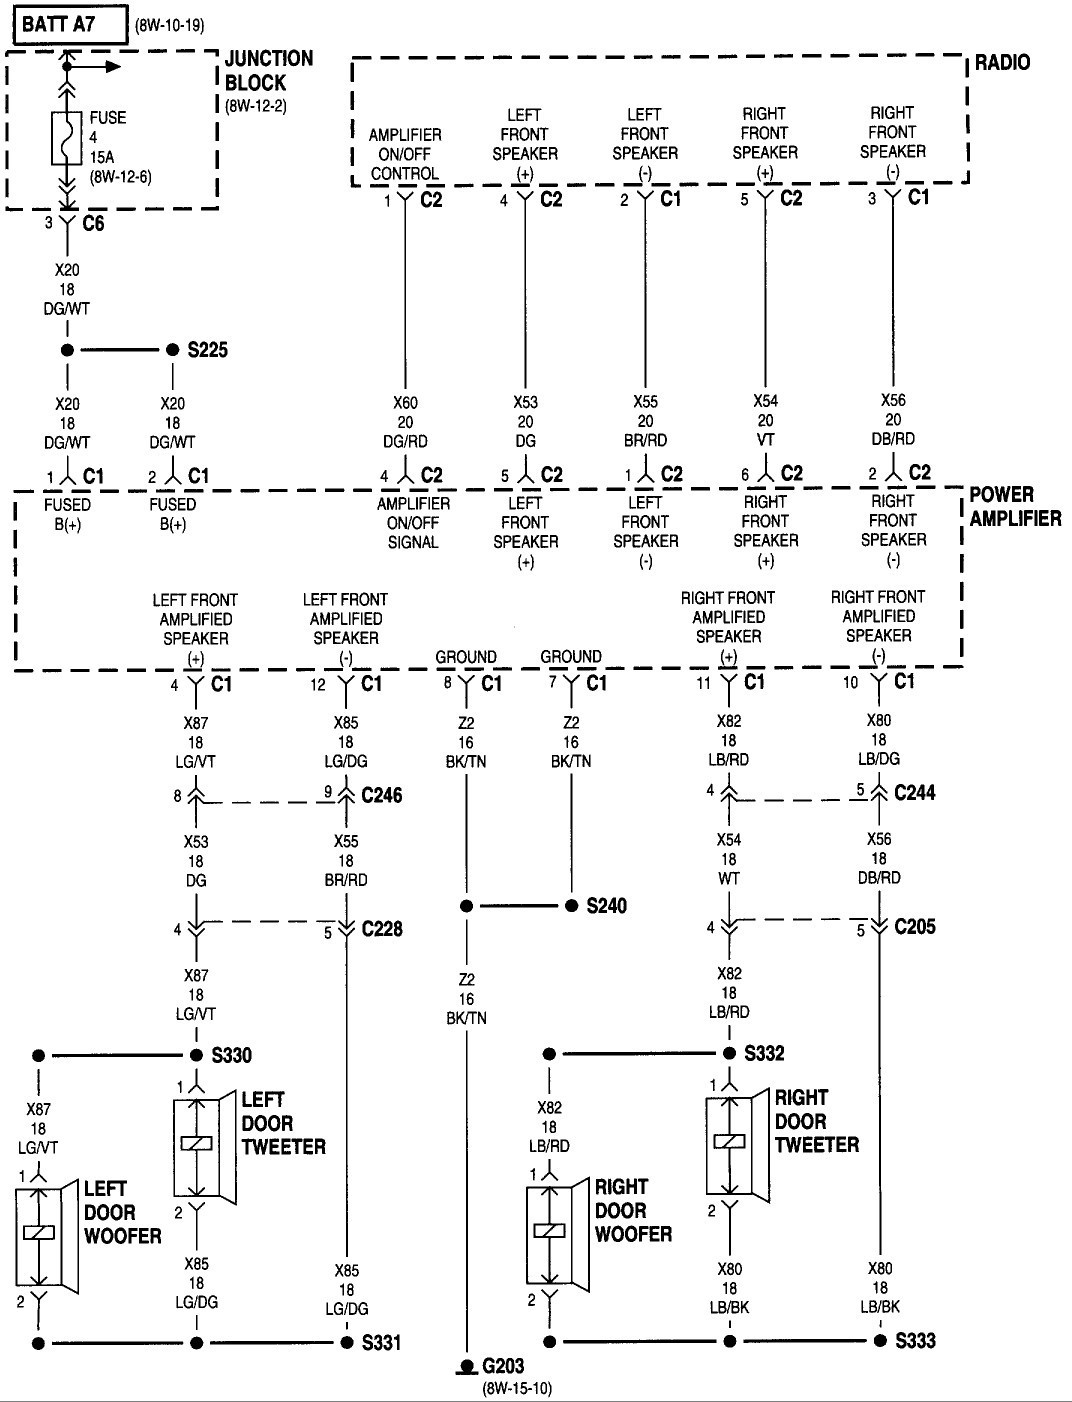 1986 dodge caravan radio wiring diagram wiring diagram for light 2003 dodge  grand caravan fuse box